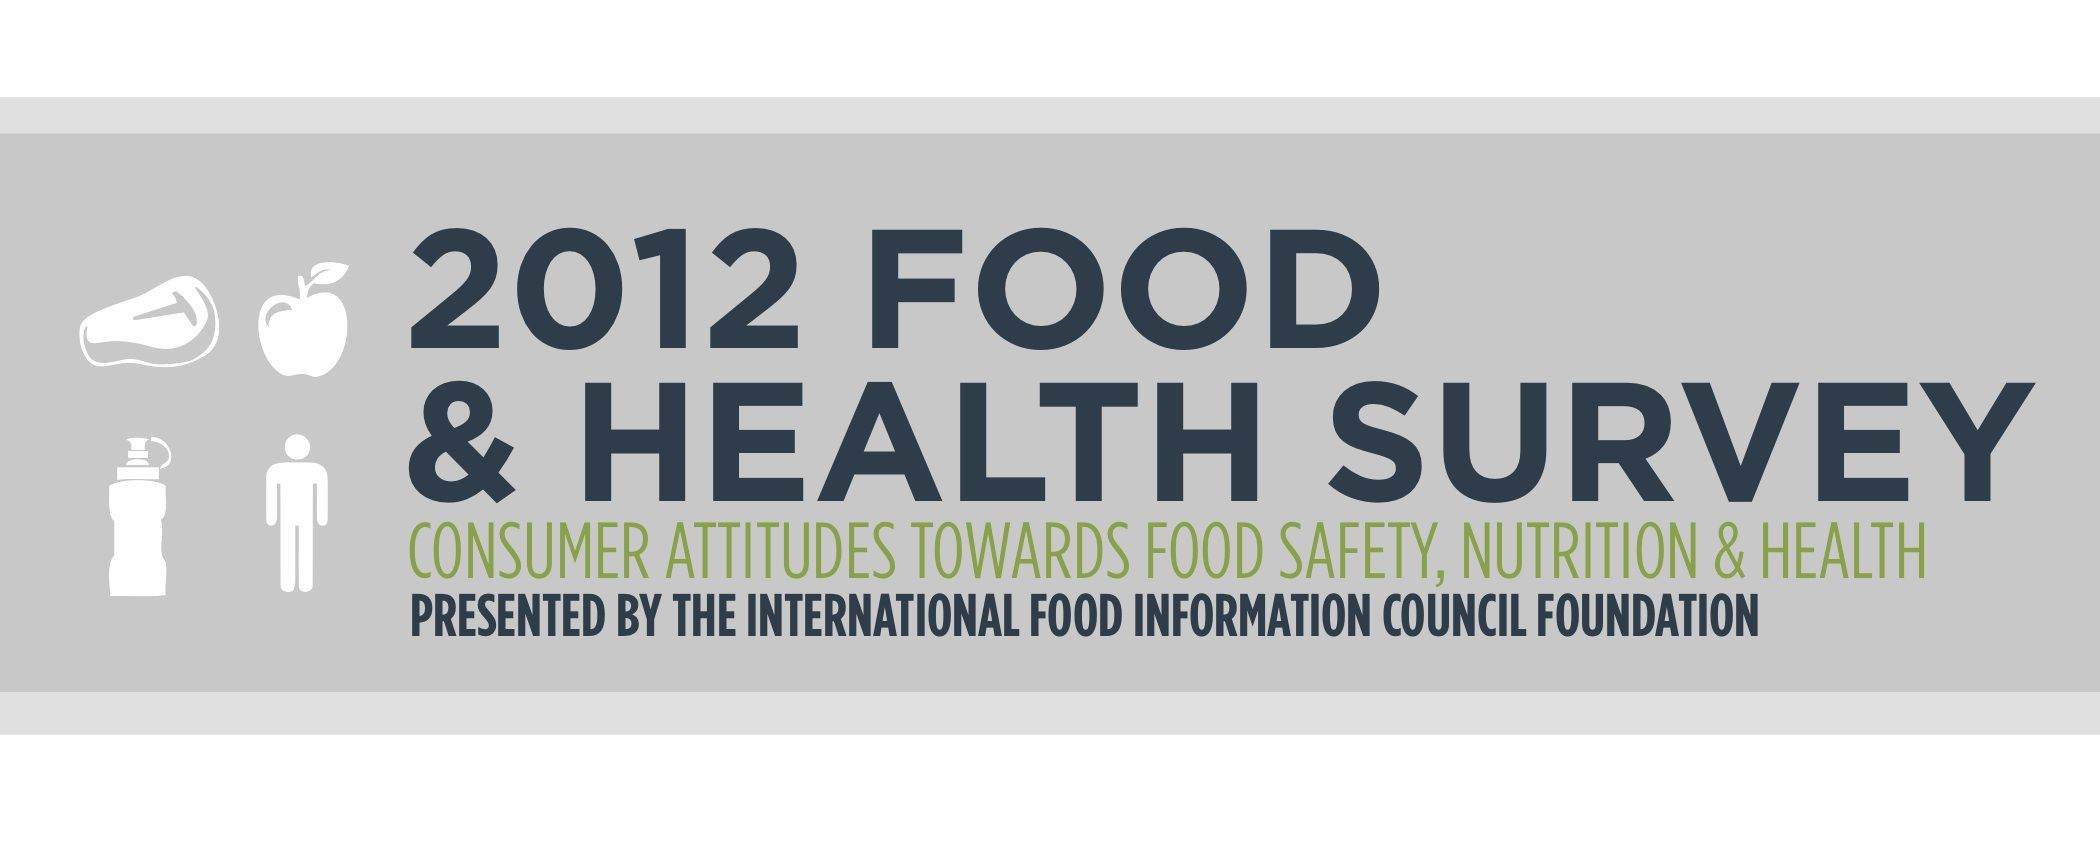 2012 Food & Health Survey: Consumer Attitudes toward Food Safety, Nutrition and Health